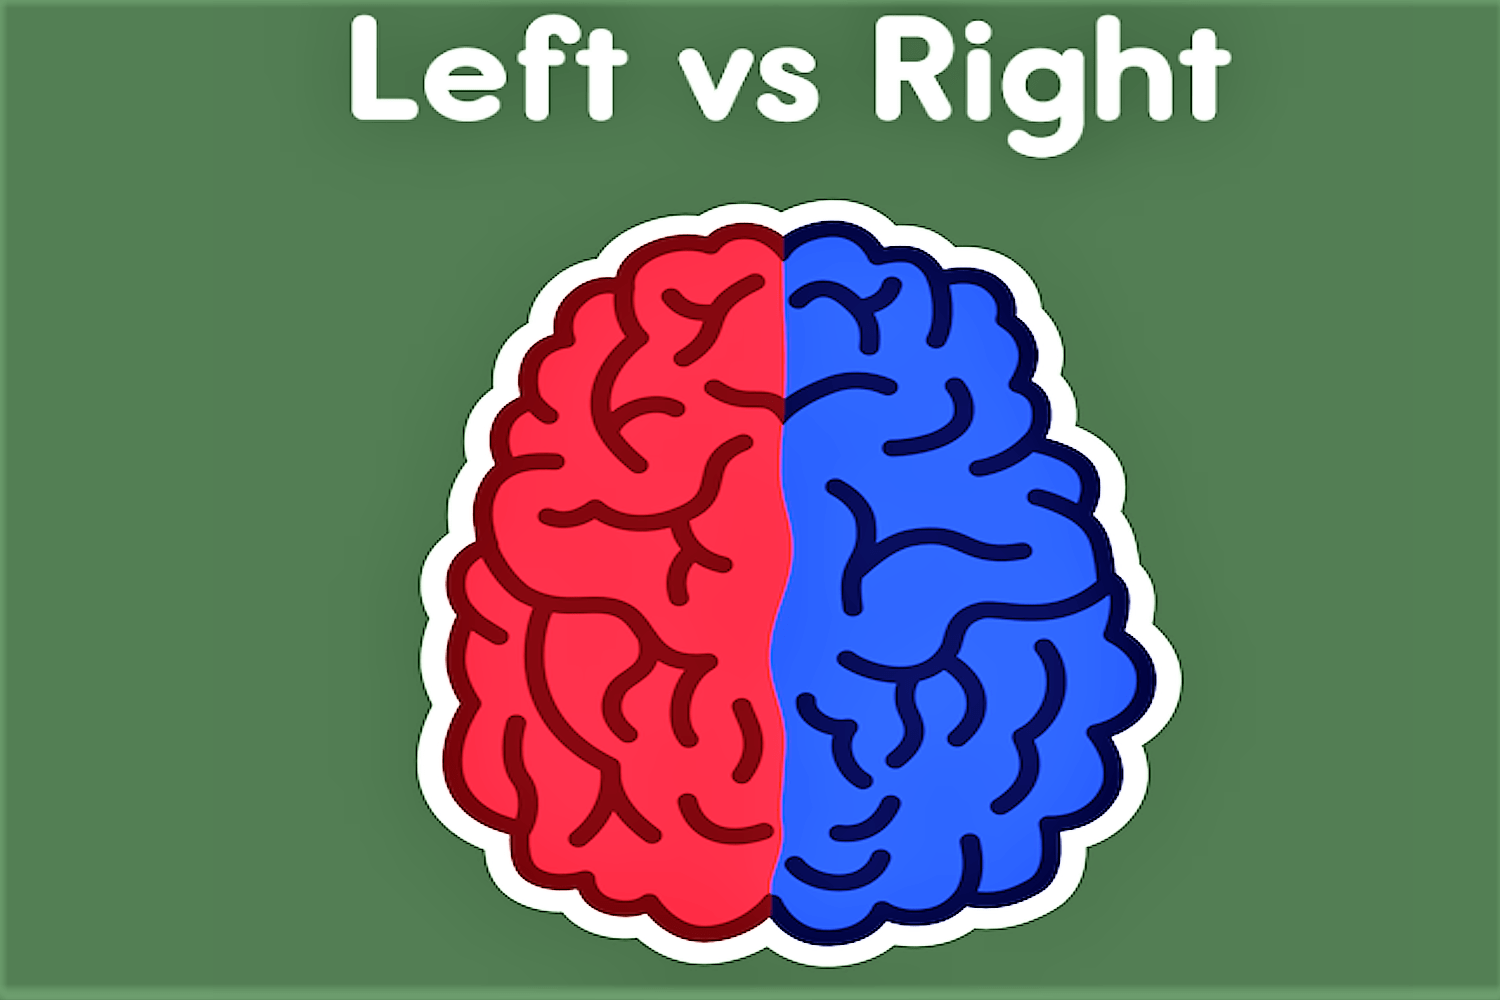 left vs right brain games\u0027 fails to train your mind \u2013 southwest shadowleft vs right brain games is an application that trains your awareness, precision, reasoning, patience, adaptability and reflexes, through a series of